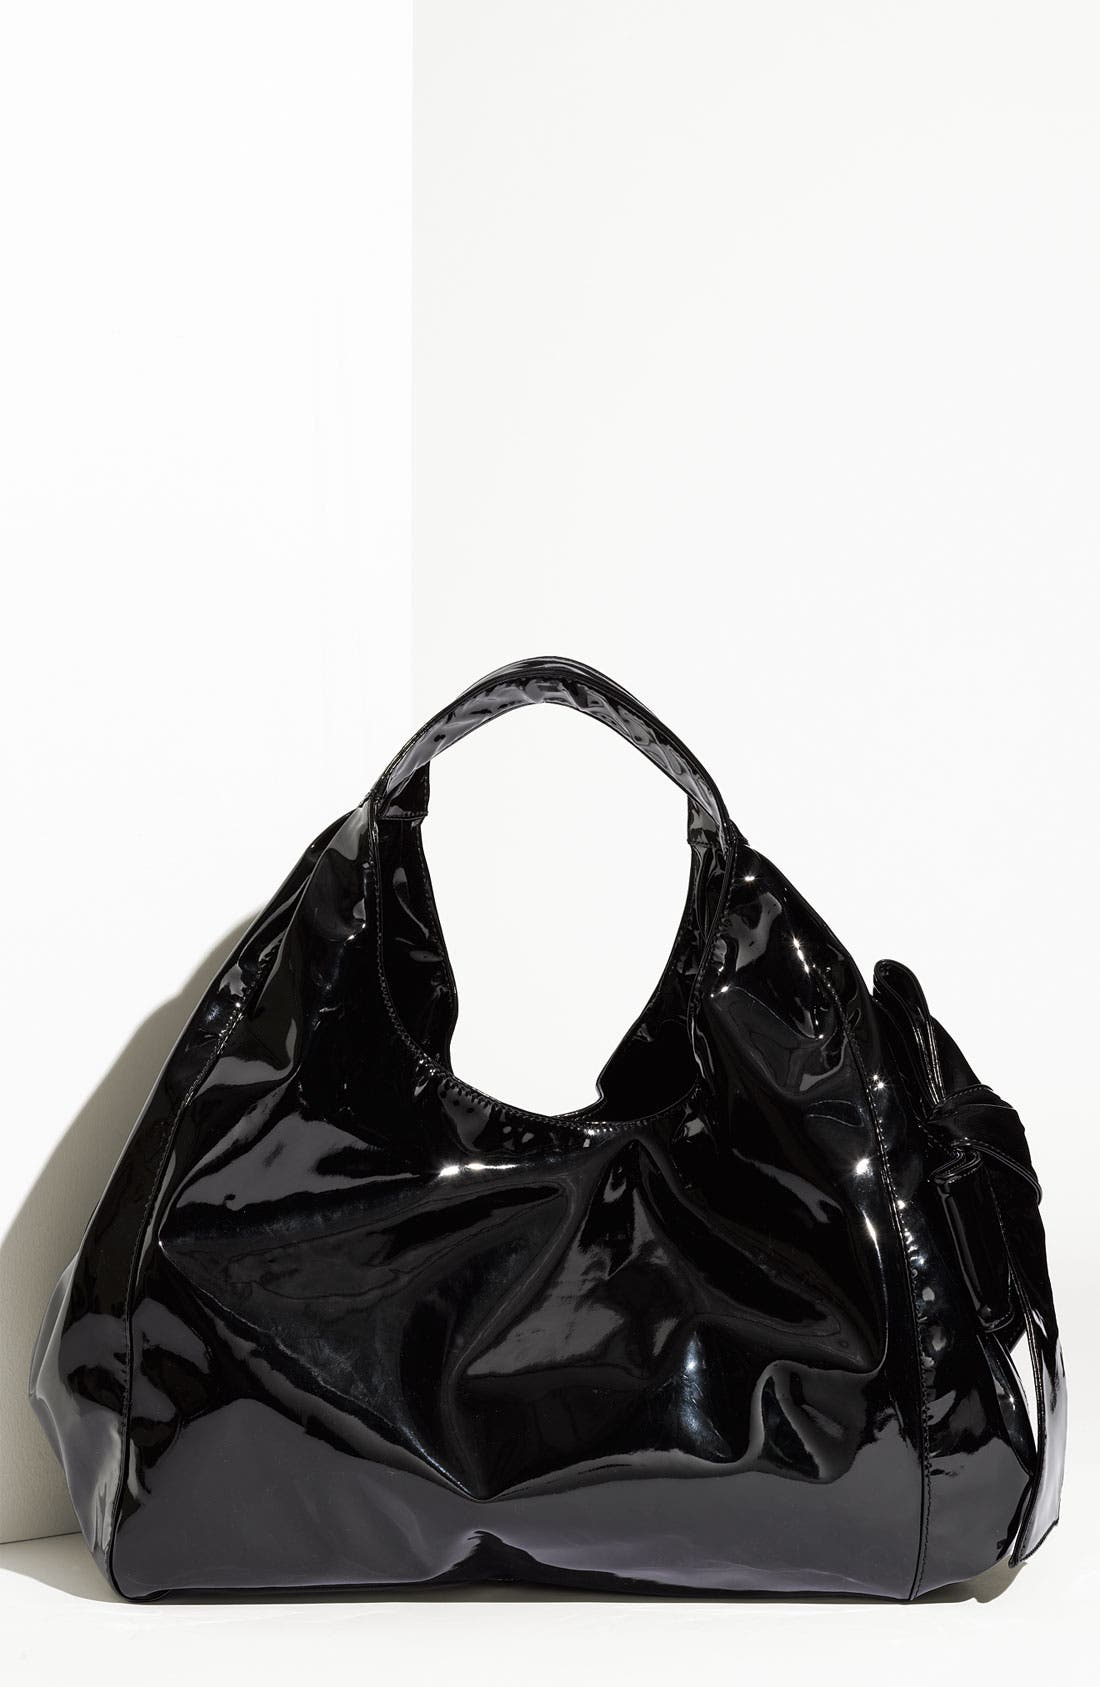 Alternate Image 1 Selected - Valentino 'Lacca Nuage - Large' Hobo